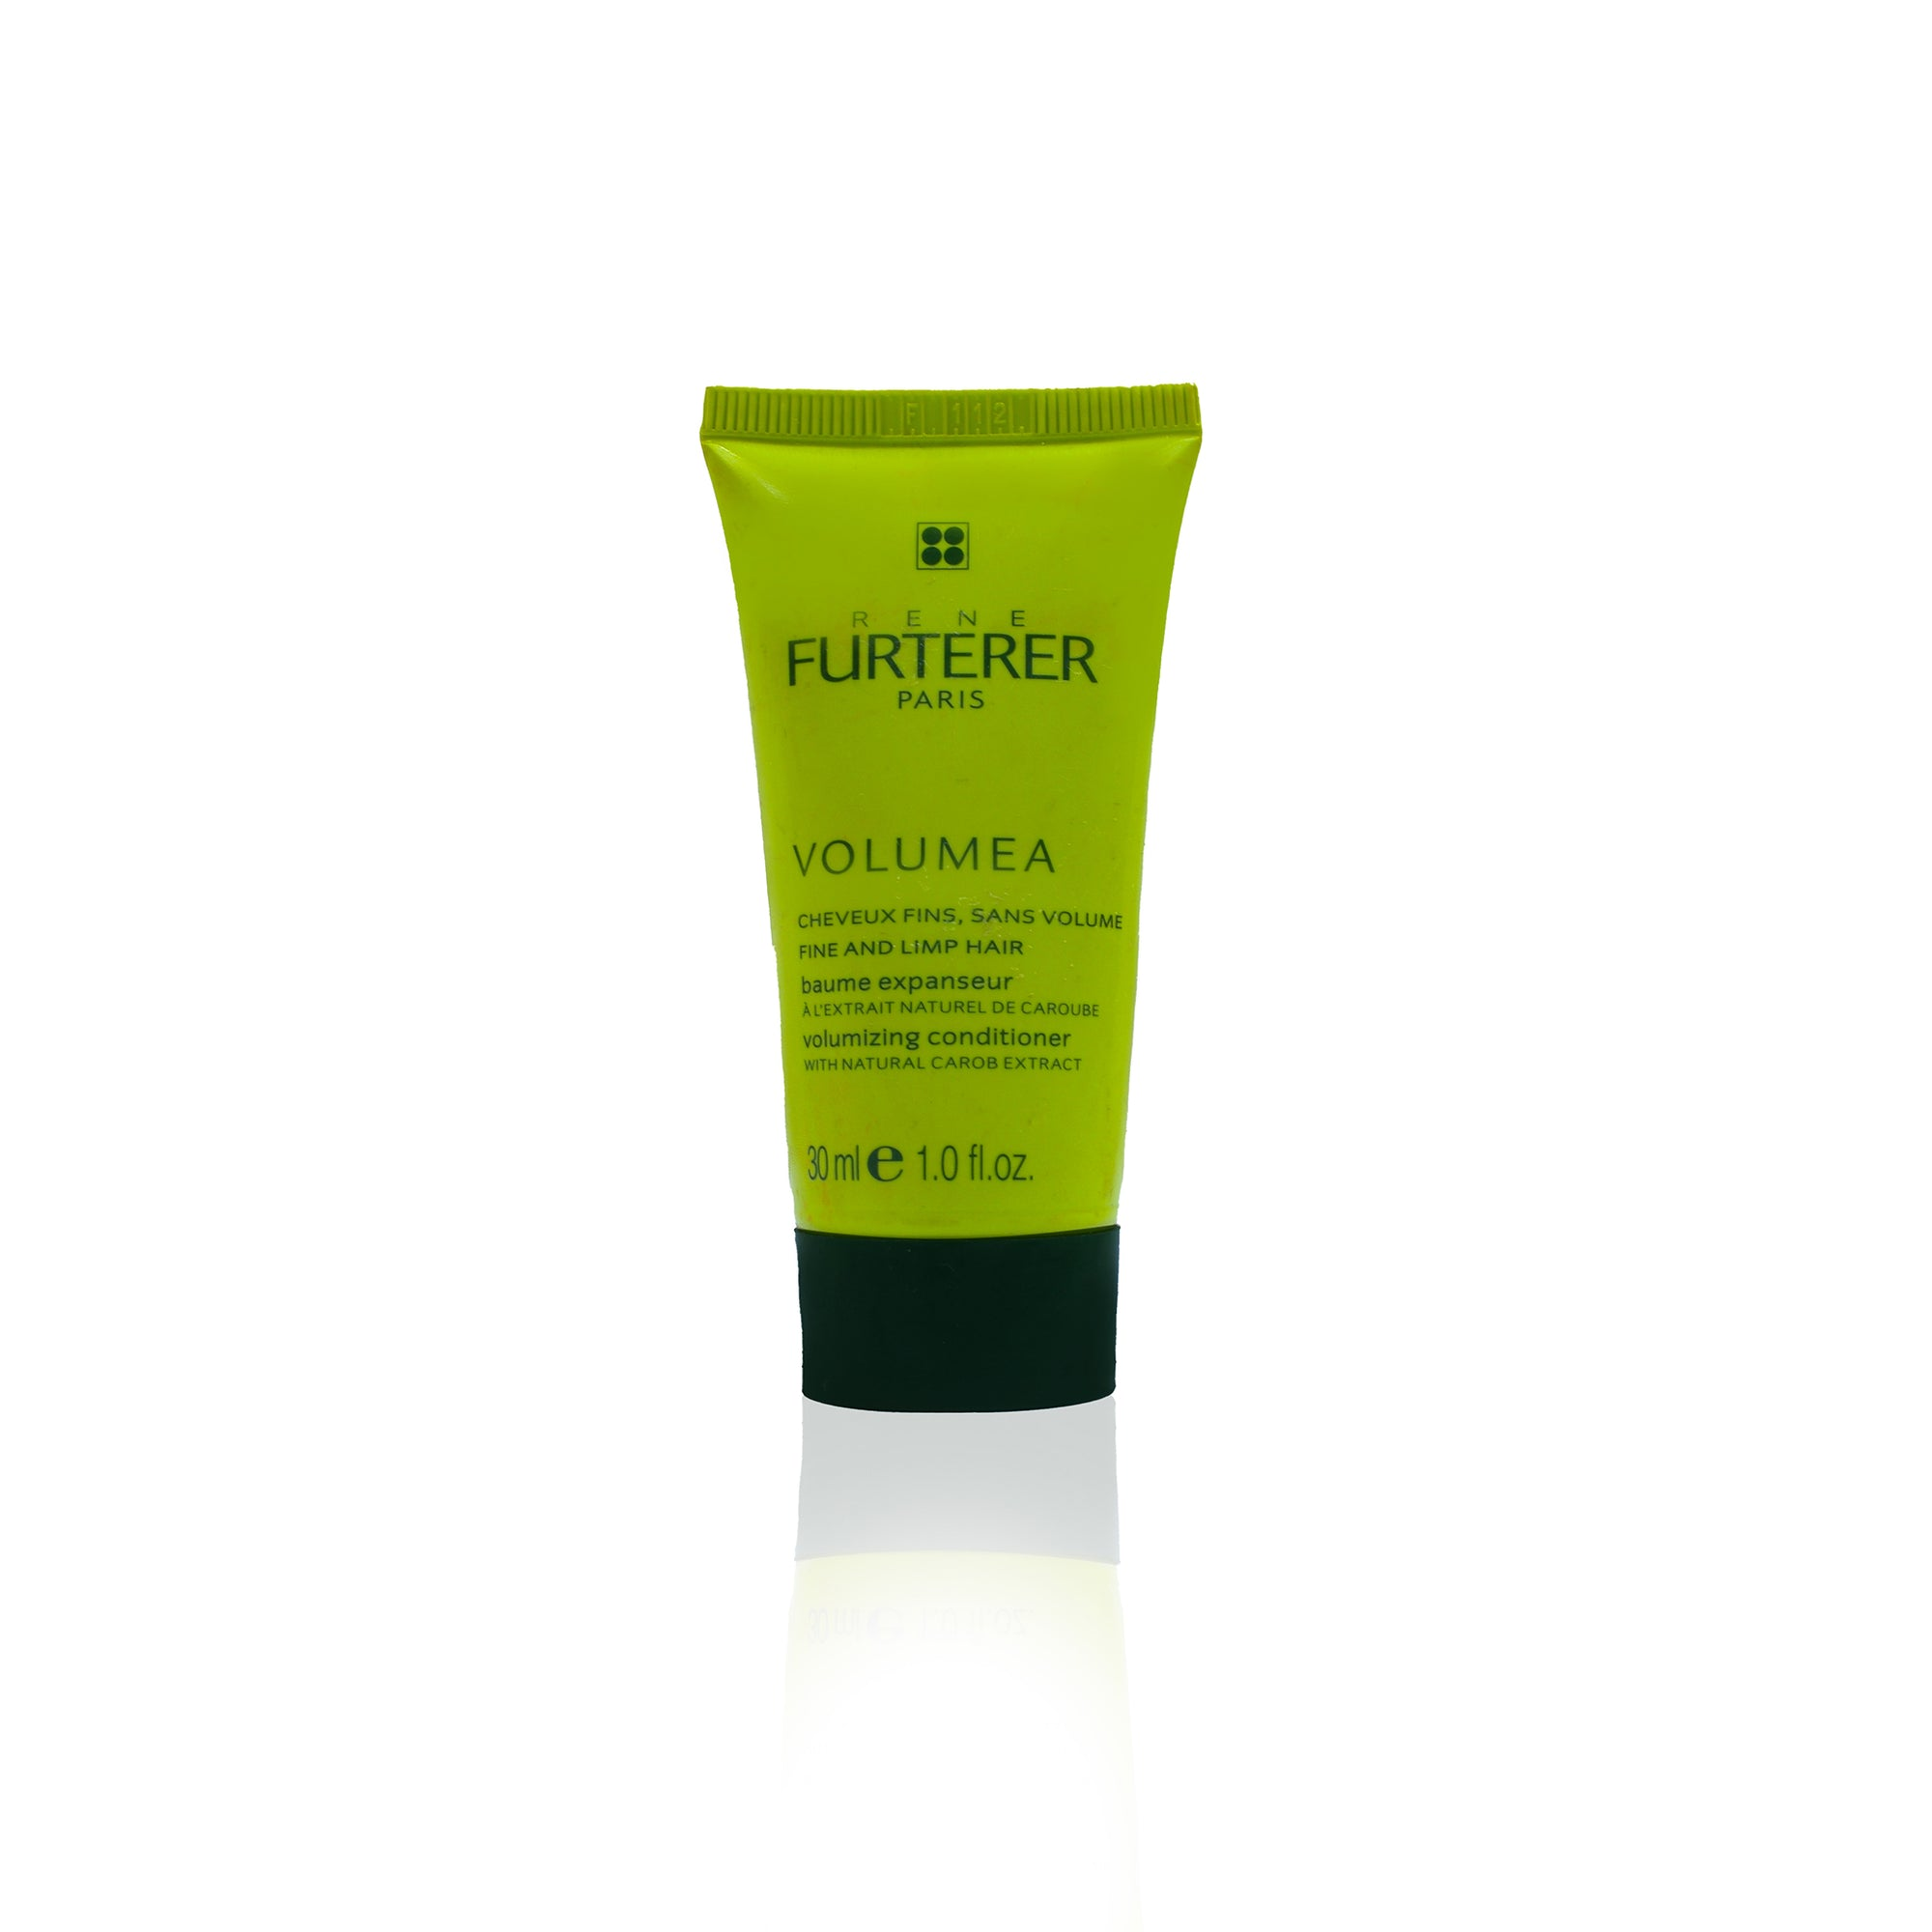 René Furterer Volumea Volumizing Conditioner 30ml-NA12294